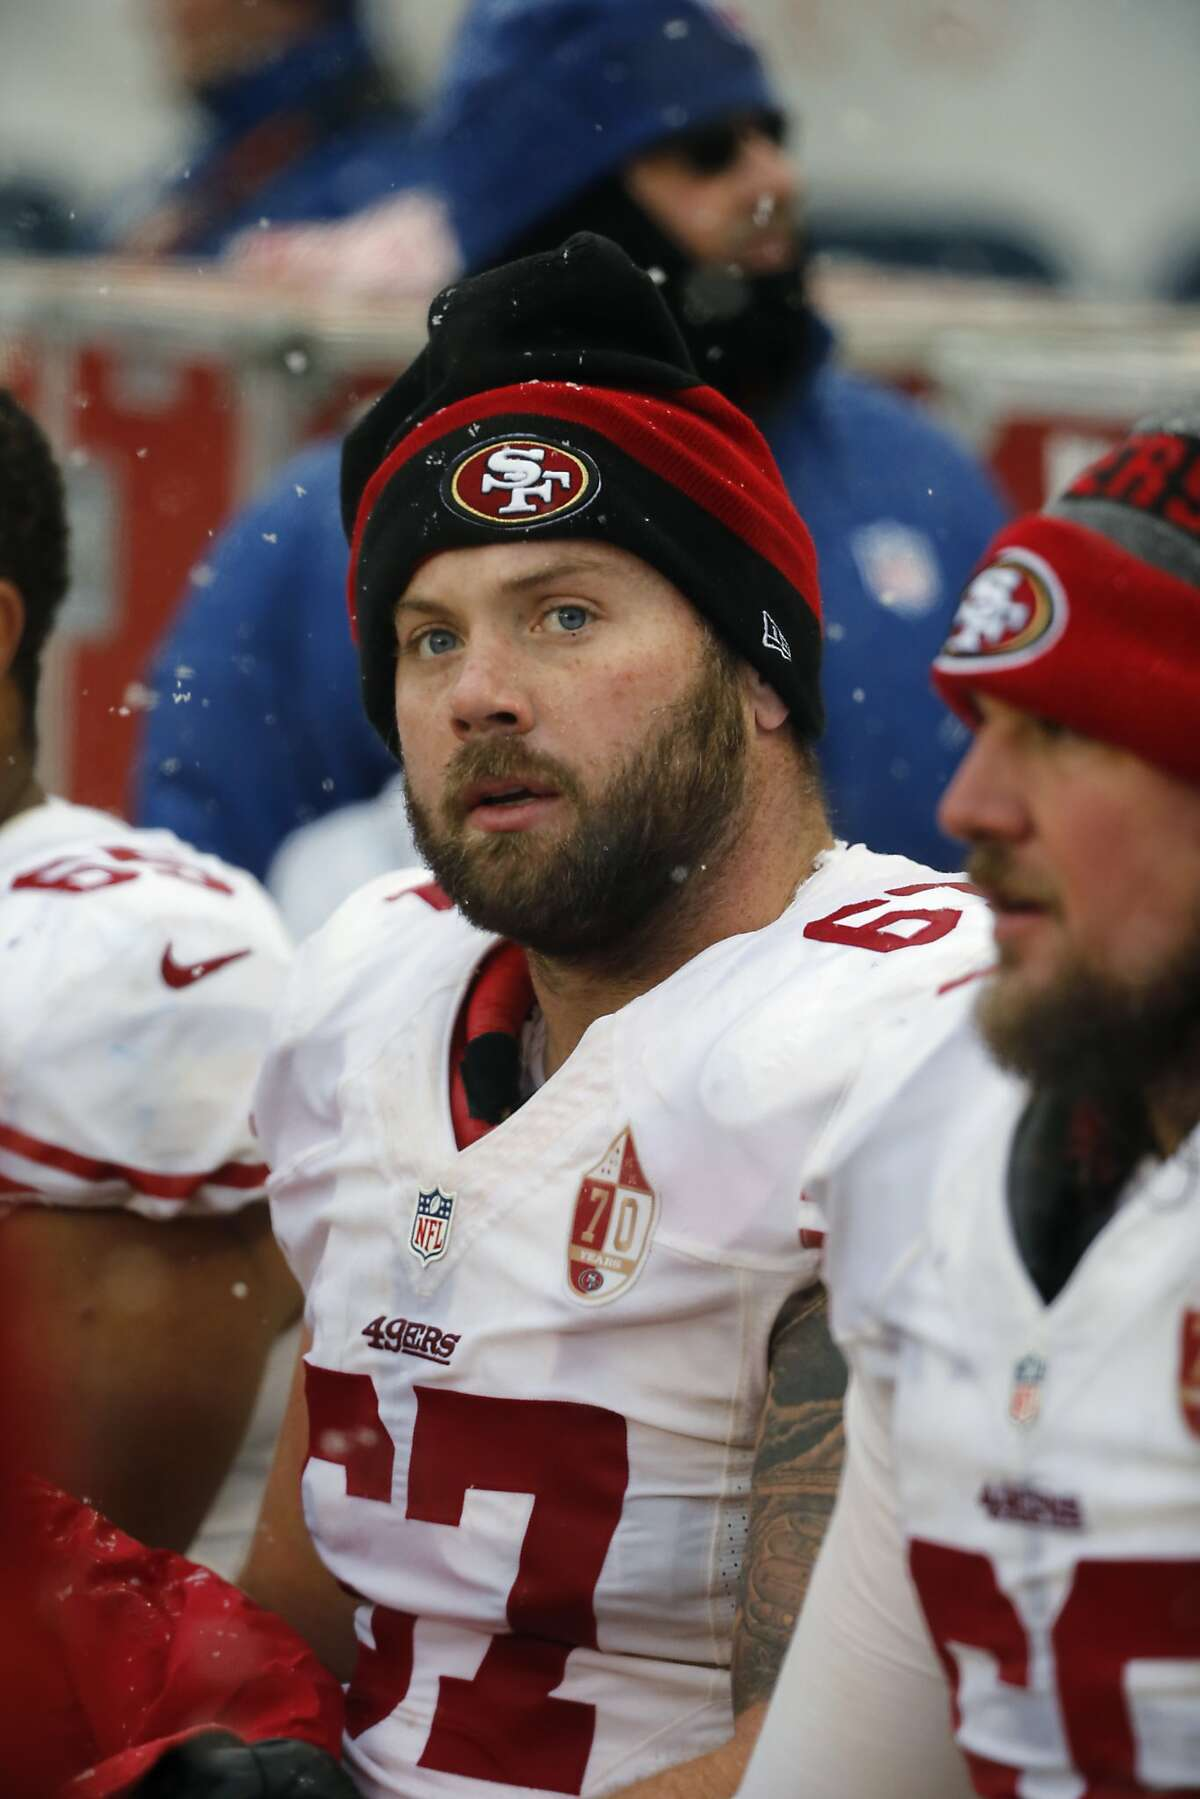 San Francisco 49ers center Daniel Kilgore (67) sits on the bench during the second half of an NFL football game against the Chicago Bears, Sunday, Dec. 4, 2016, in Chicago. (AP Photo/Charles Rex Arbogast)